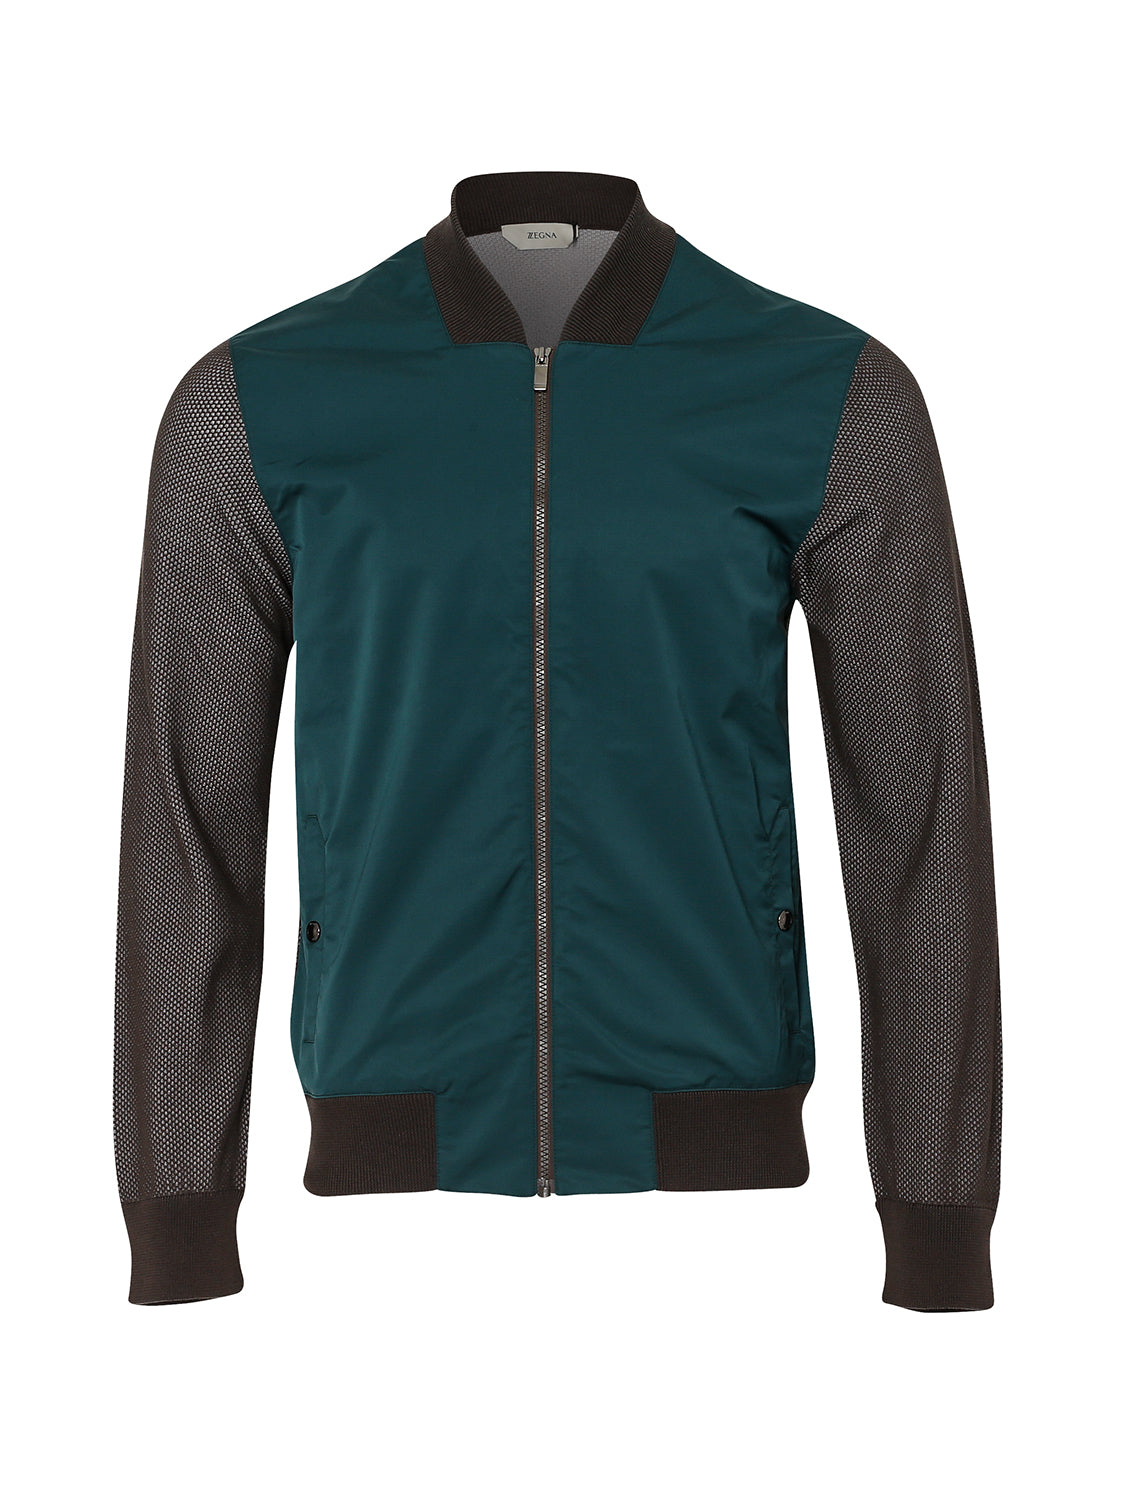 Z Zegna Contrast Bomber (Green / Brown) - Union 22